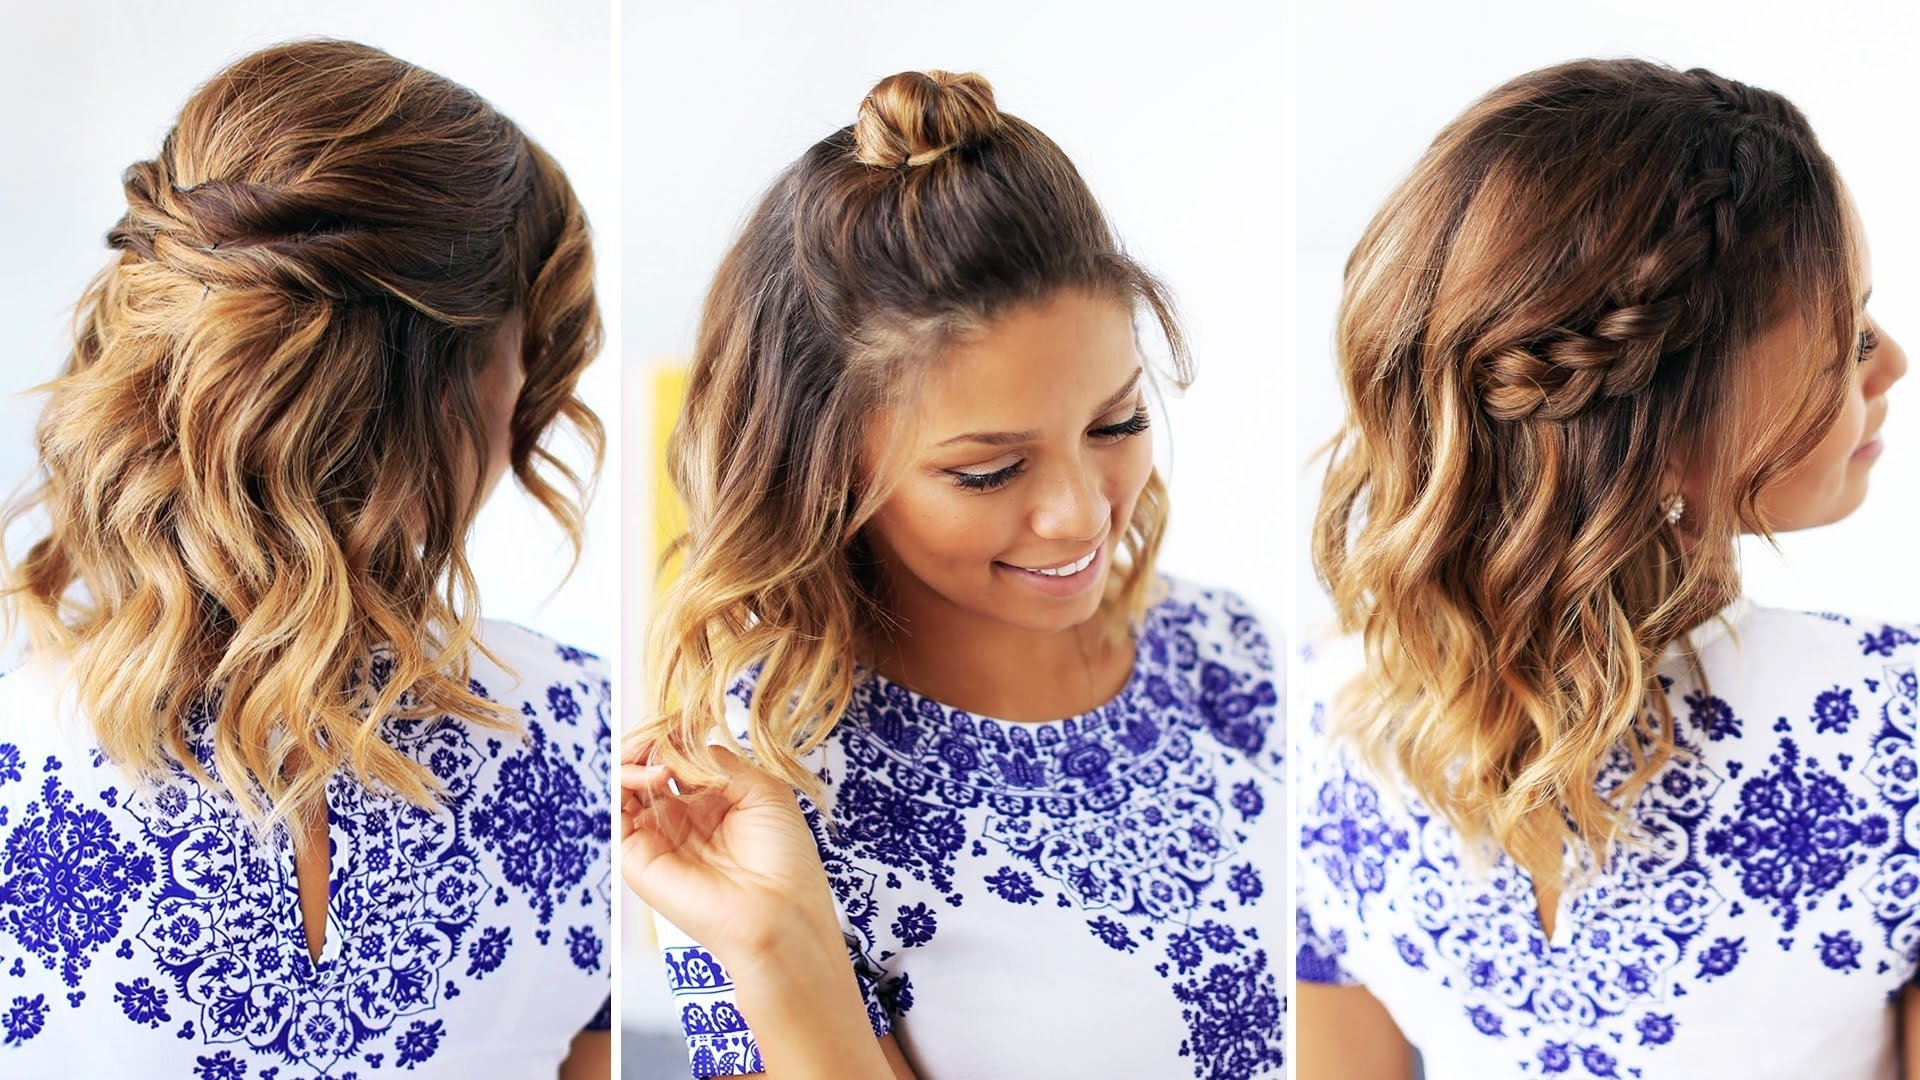 10 Elegant Cute Ideas For Short Hair